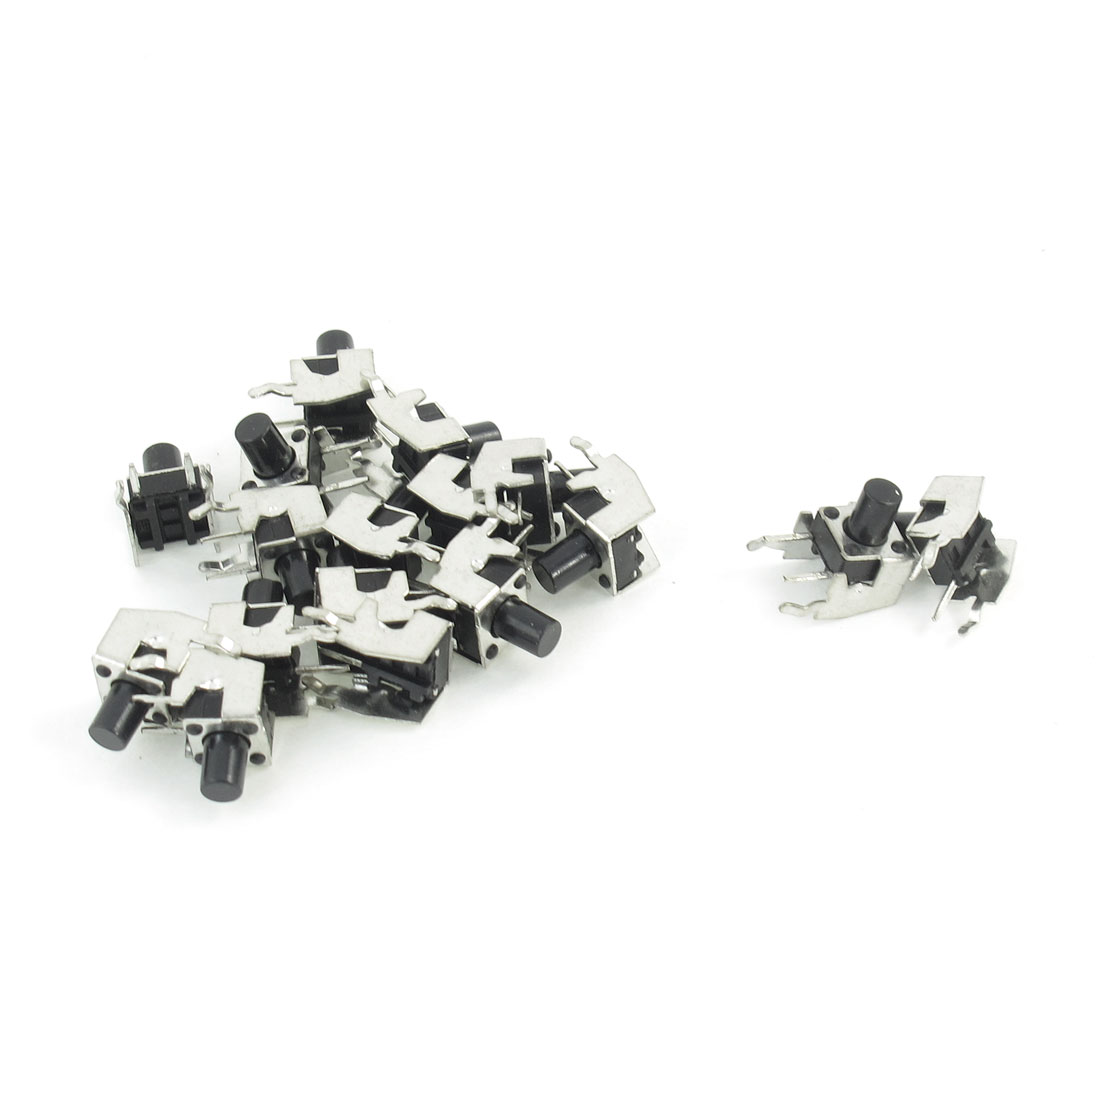 17 Pcs Momentary Right Angle Tact Press Button Switch 6.2mm x 6.2mm x 3.2mm